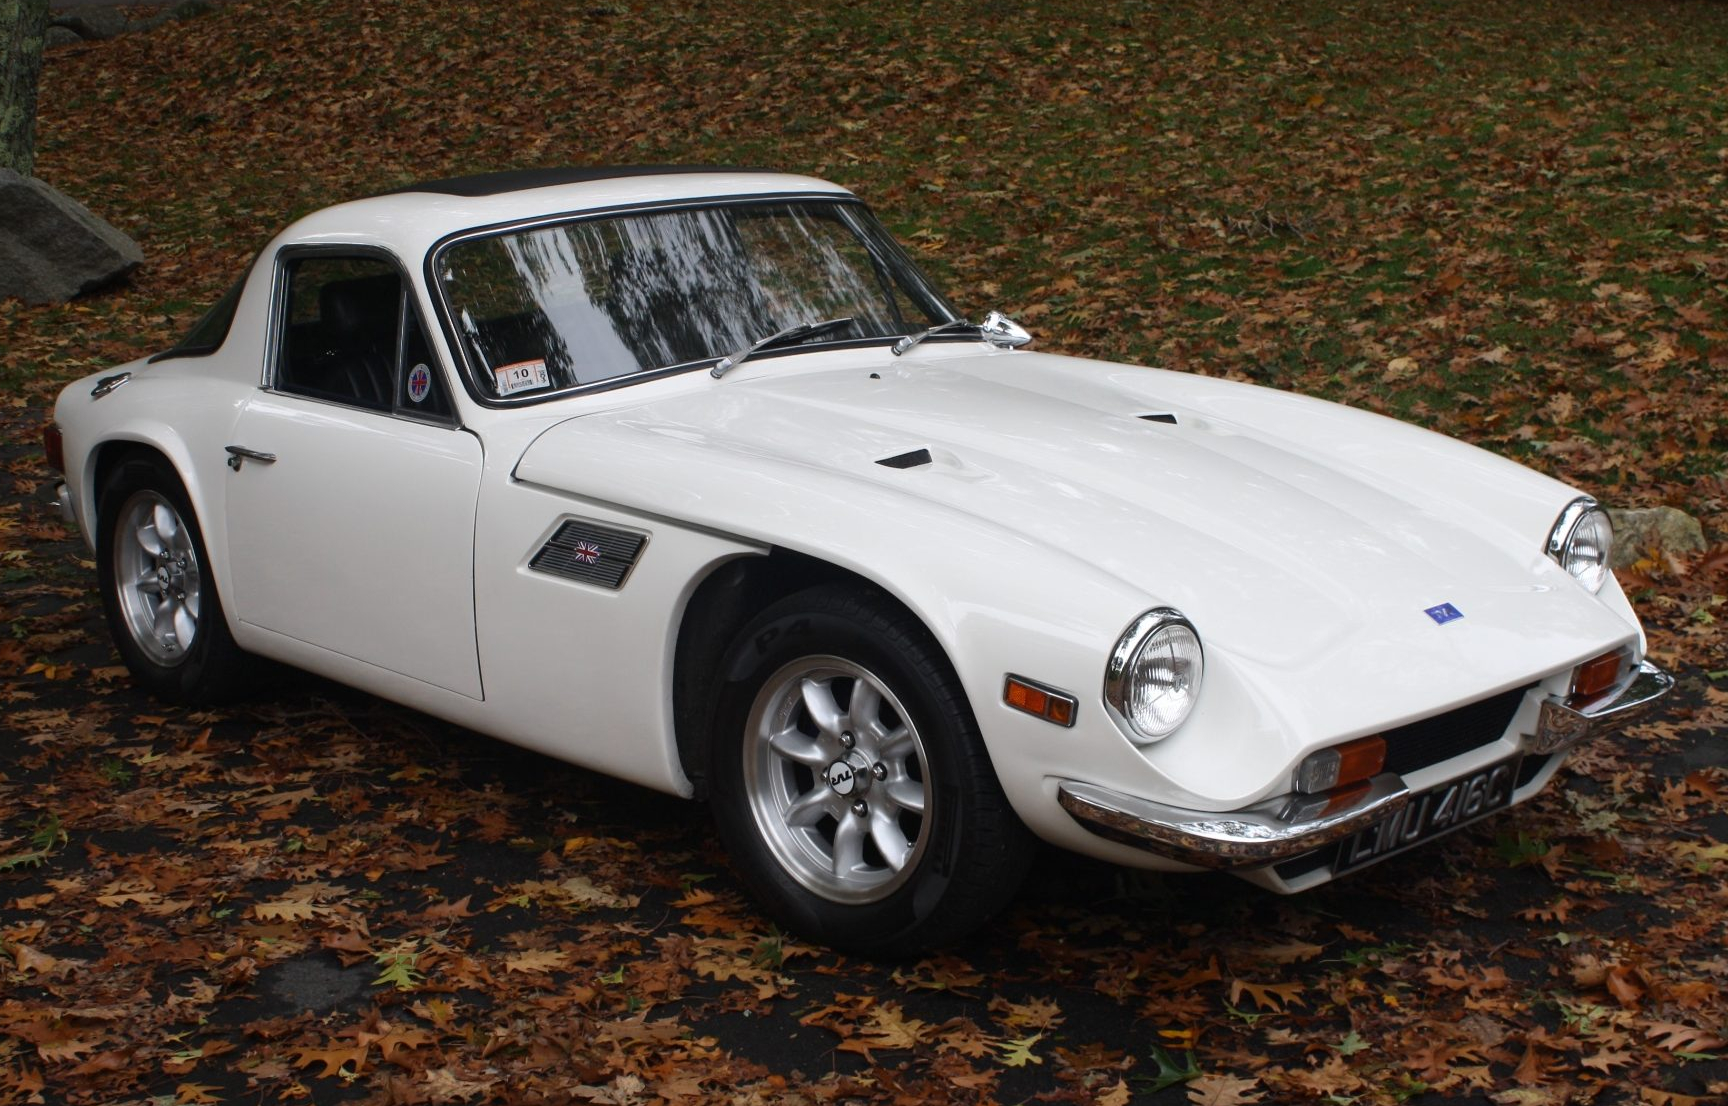 Tvr m photo - 5